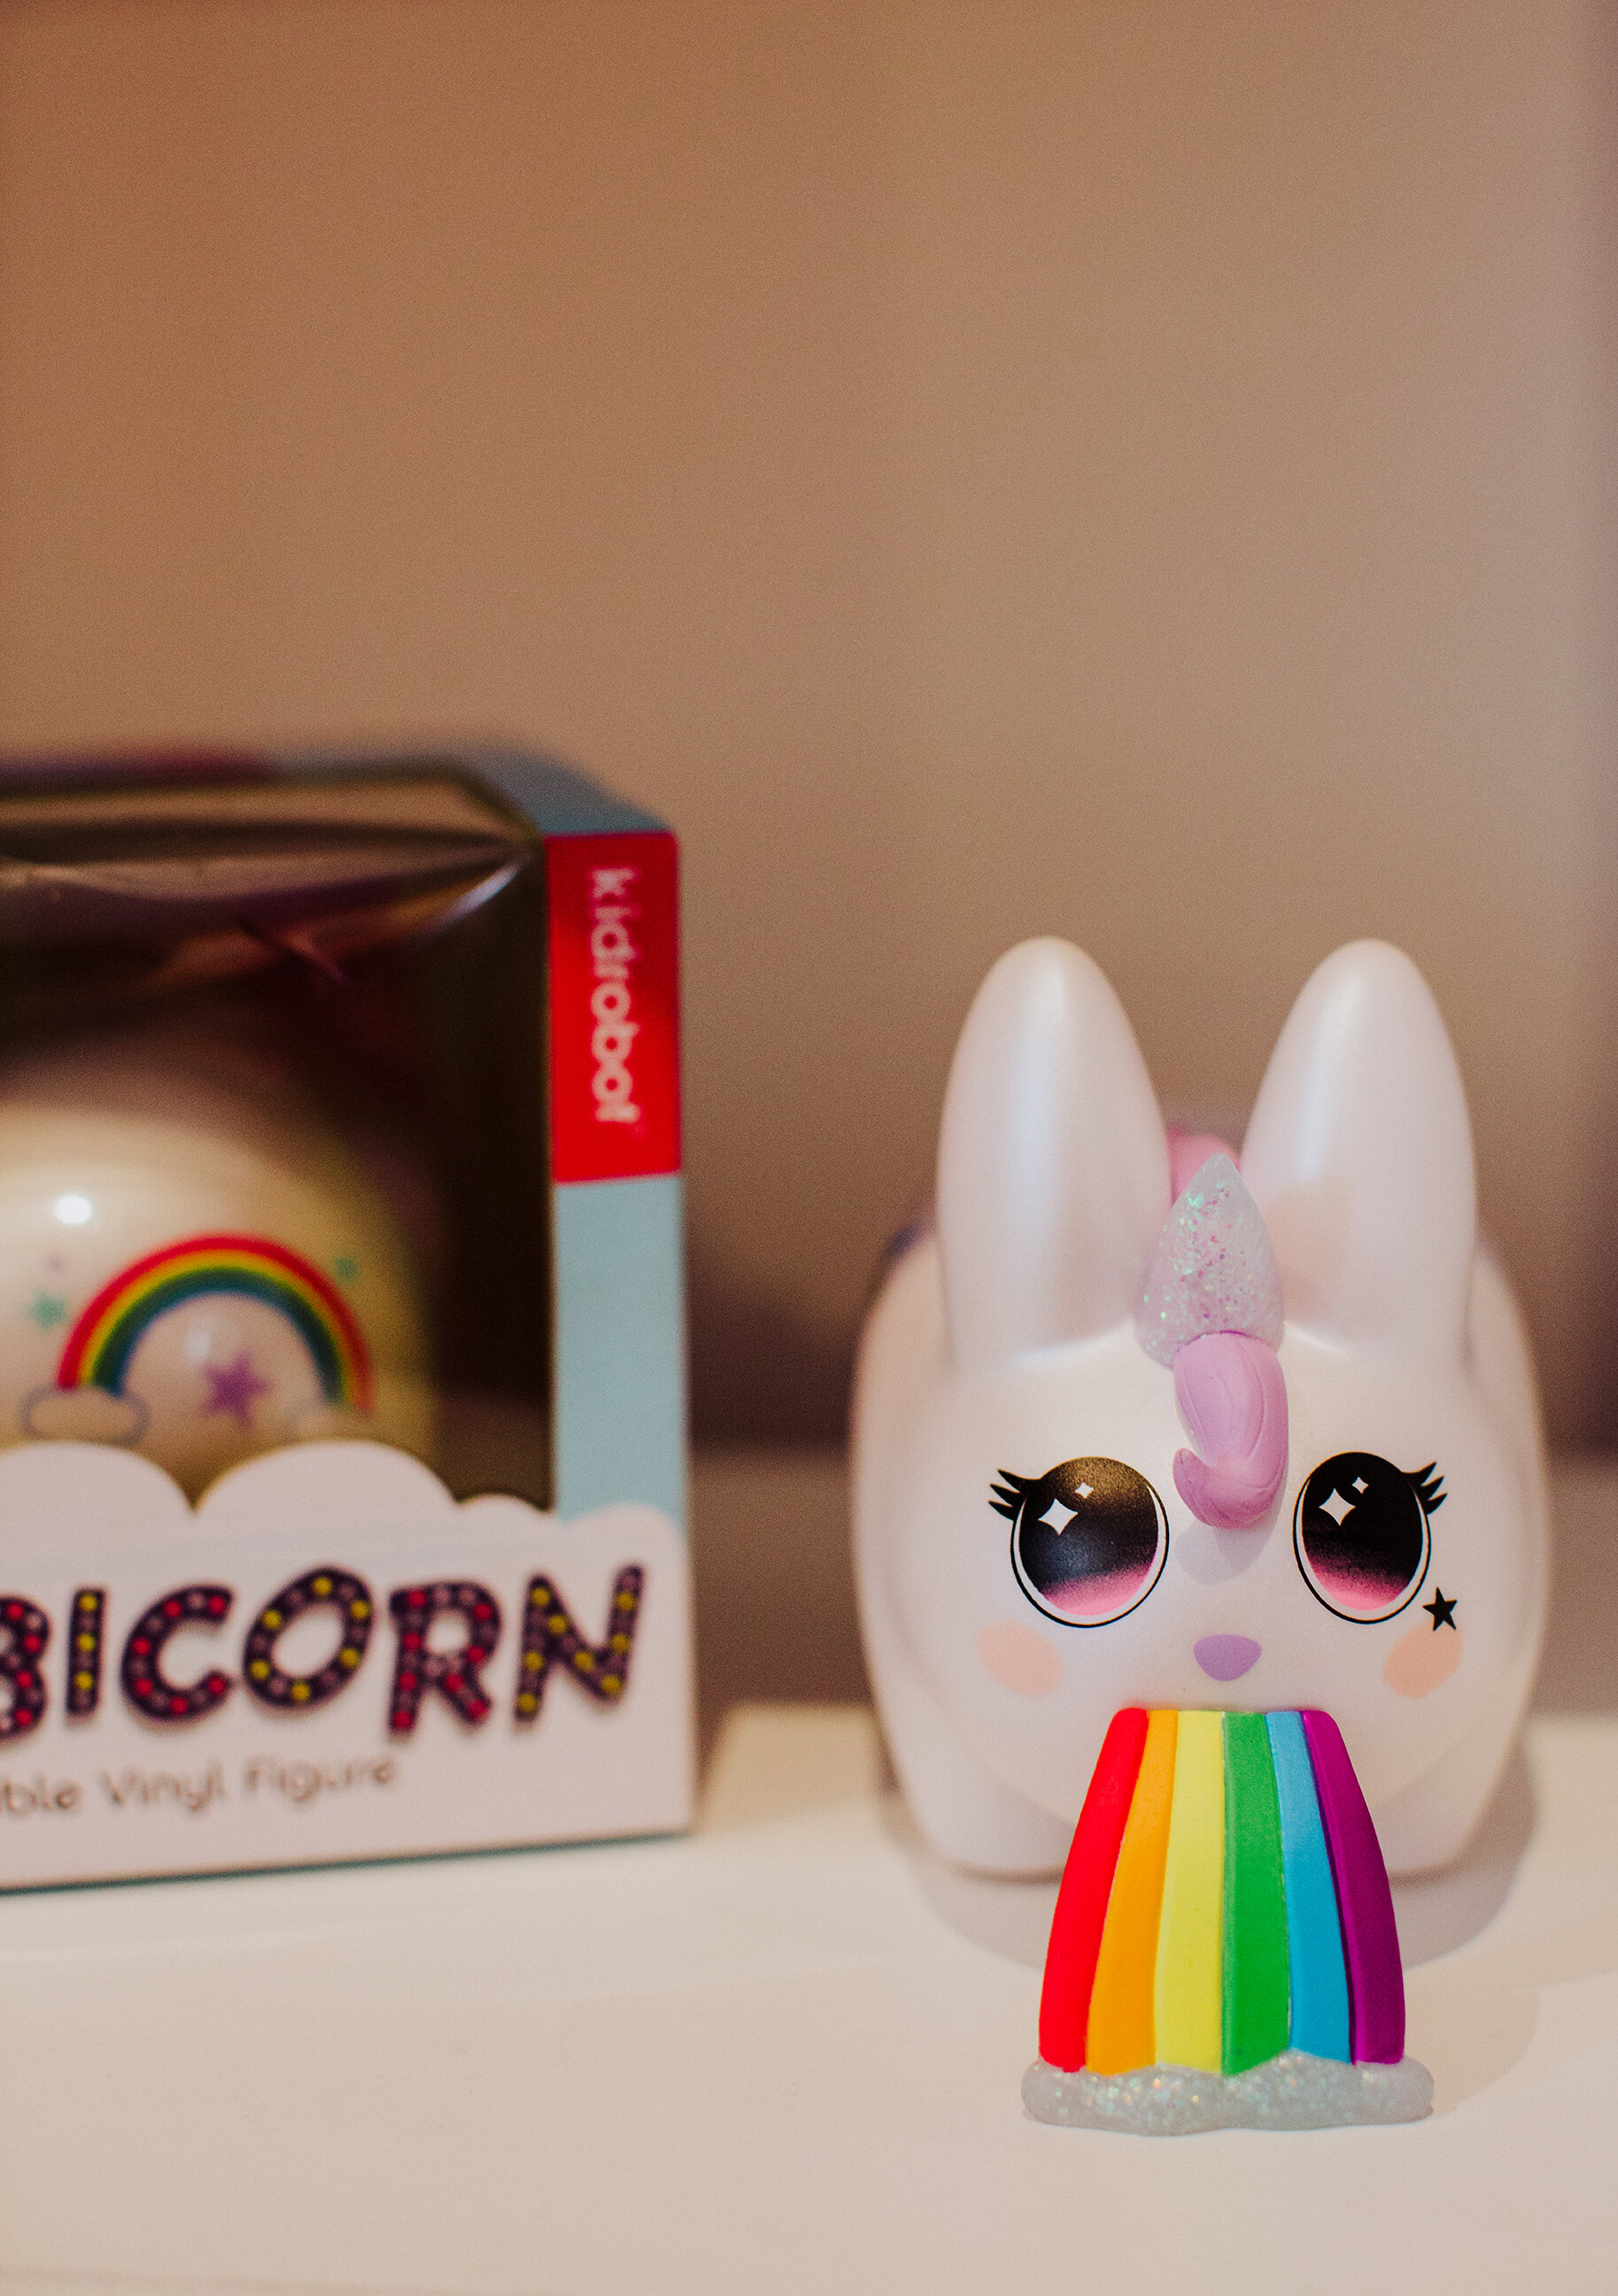 Labicorn Merch